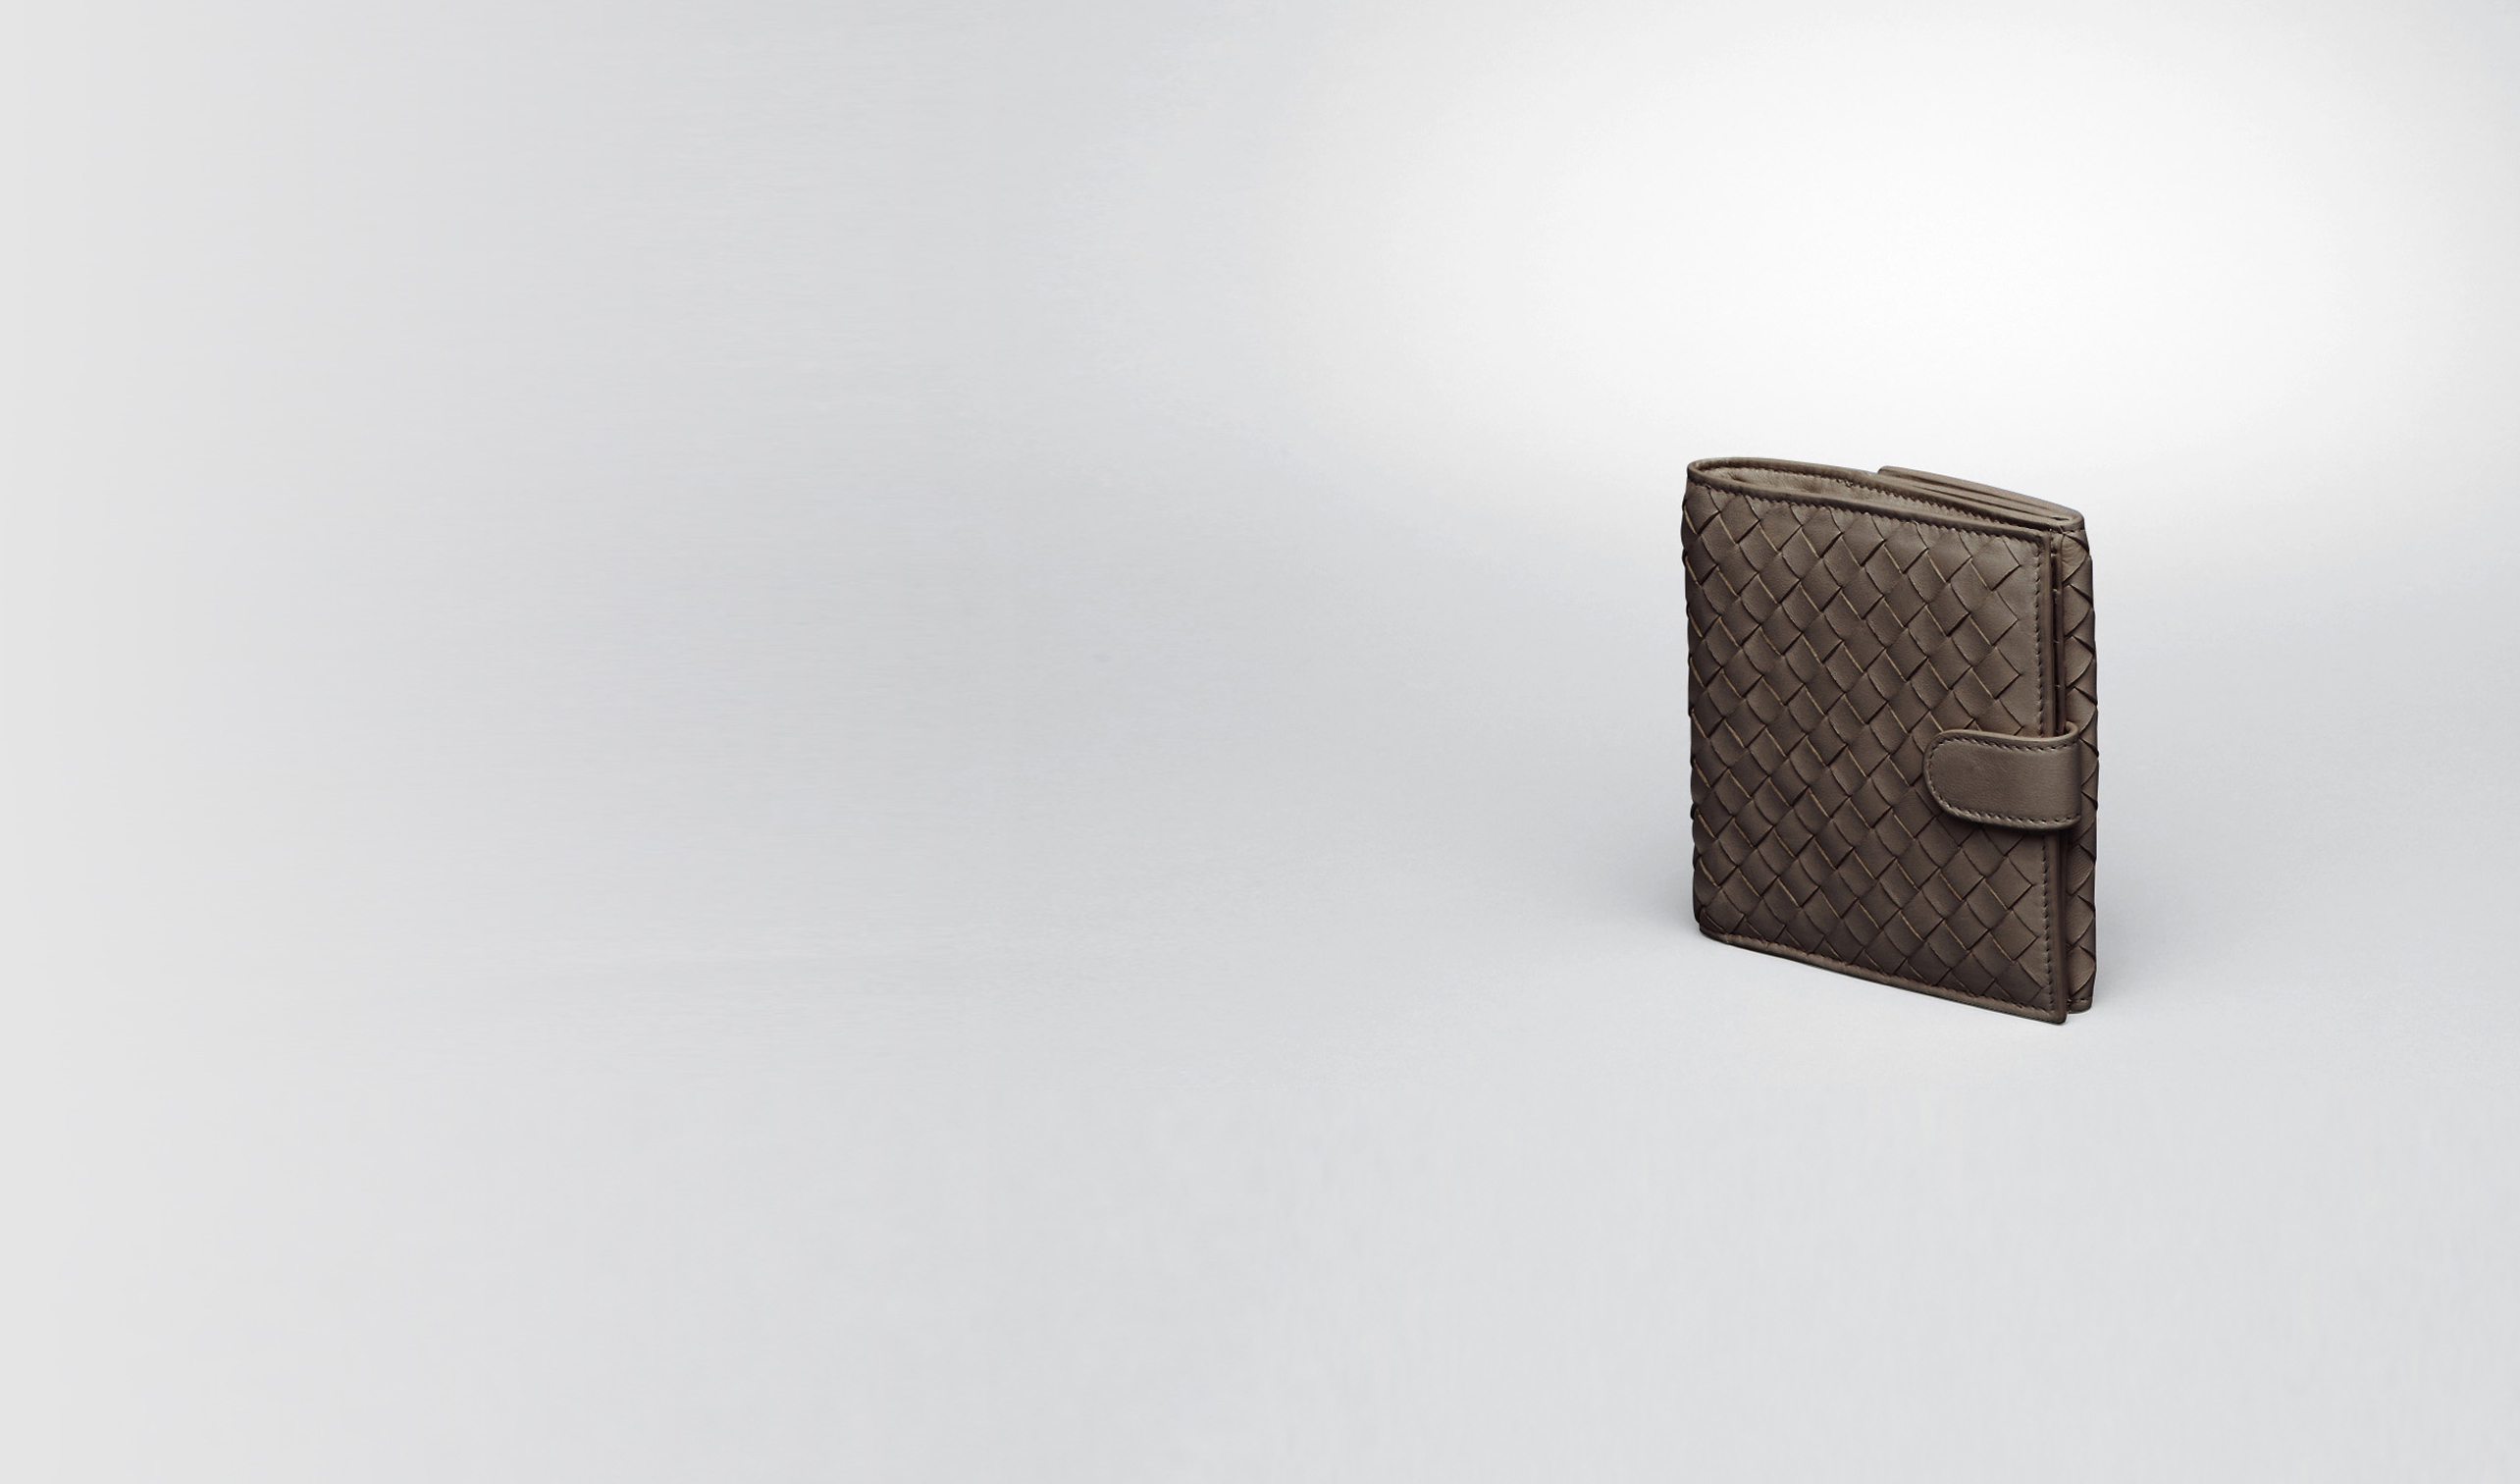 BOTTEGA VENETA Continental Wallet D Edoardo Intrecciato Nappa French Flap Wallet pl